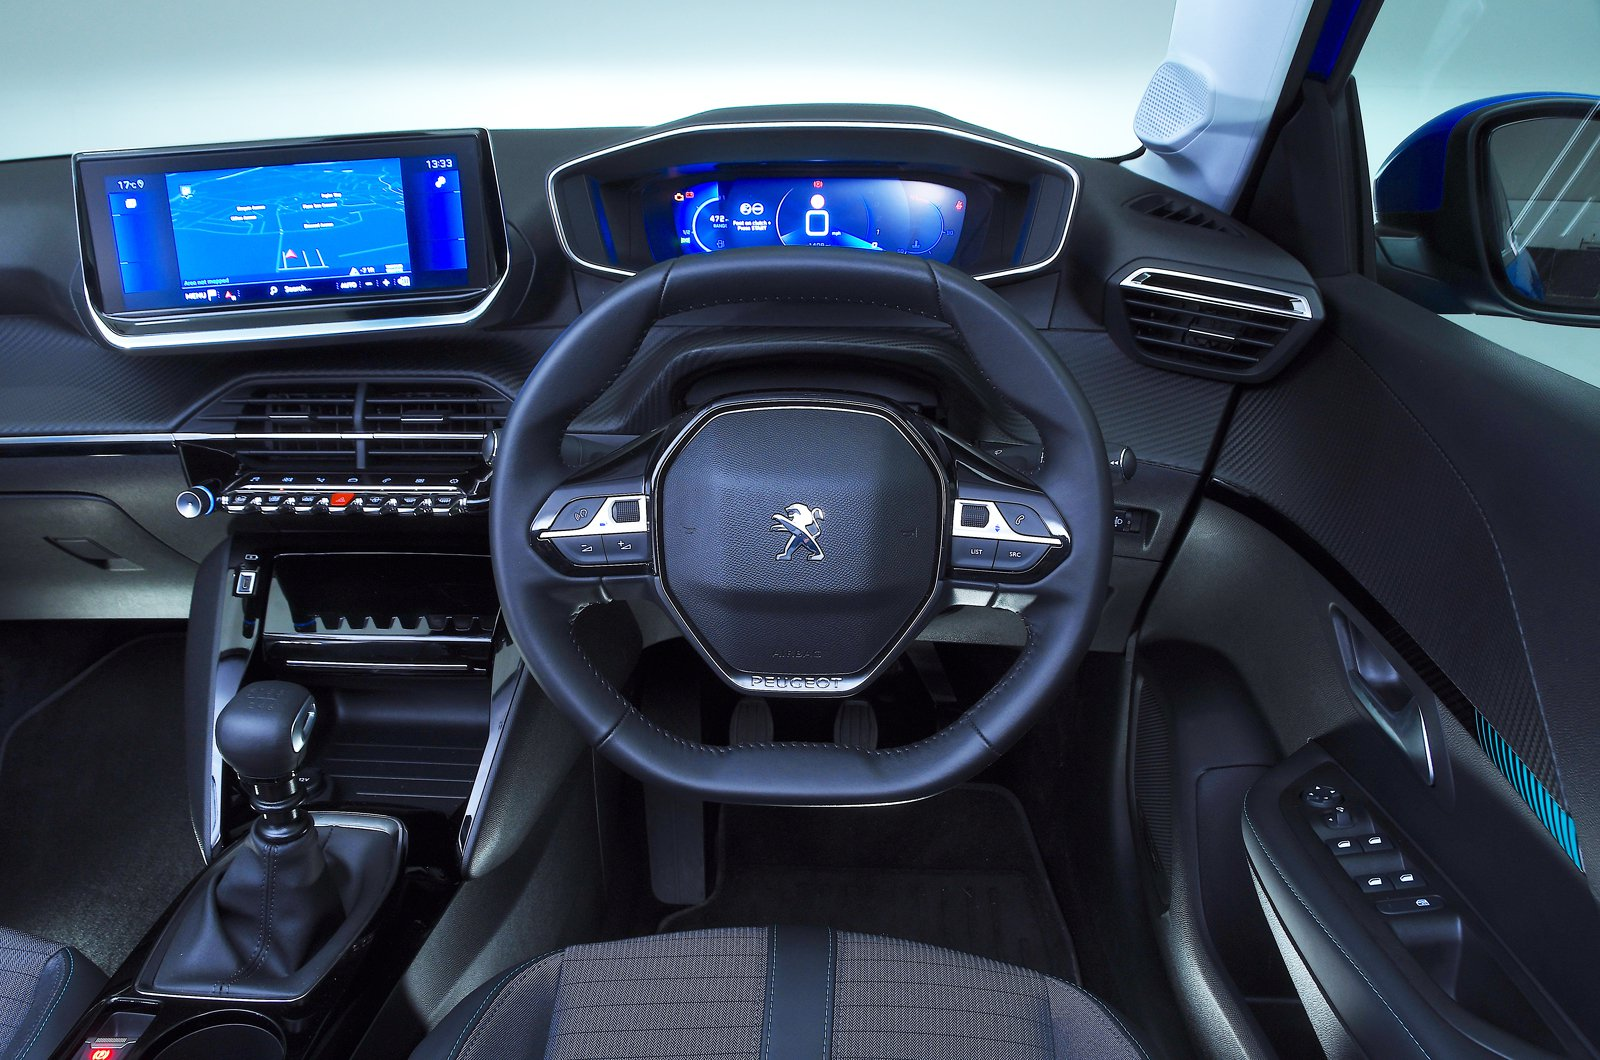 Peugeot 208 dashboard - blue 69-plate car